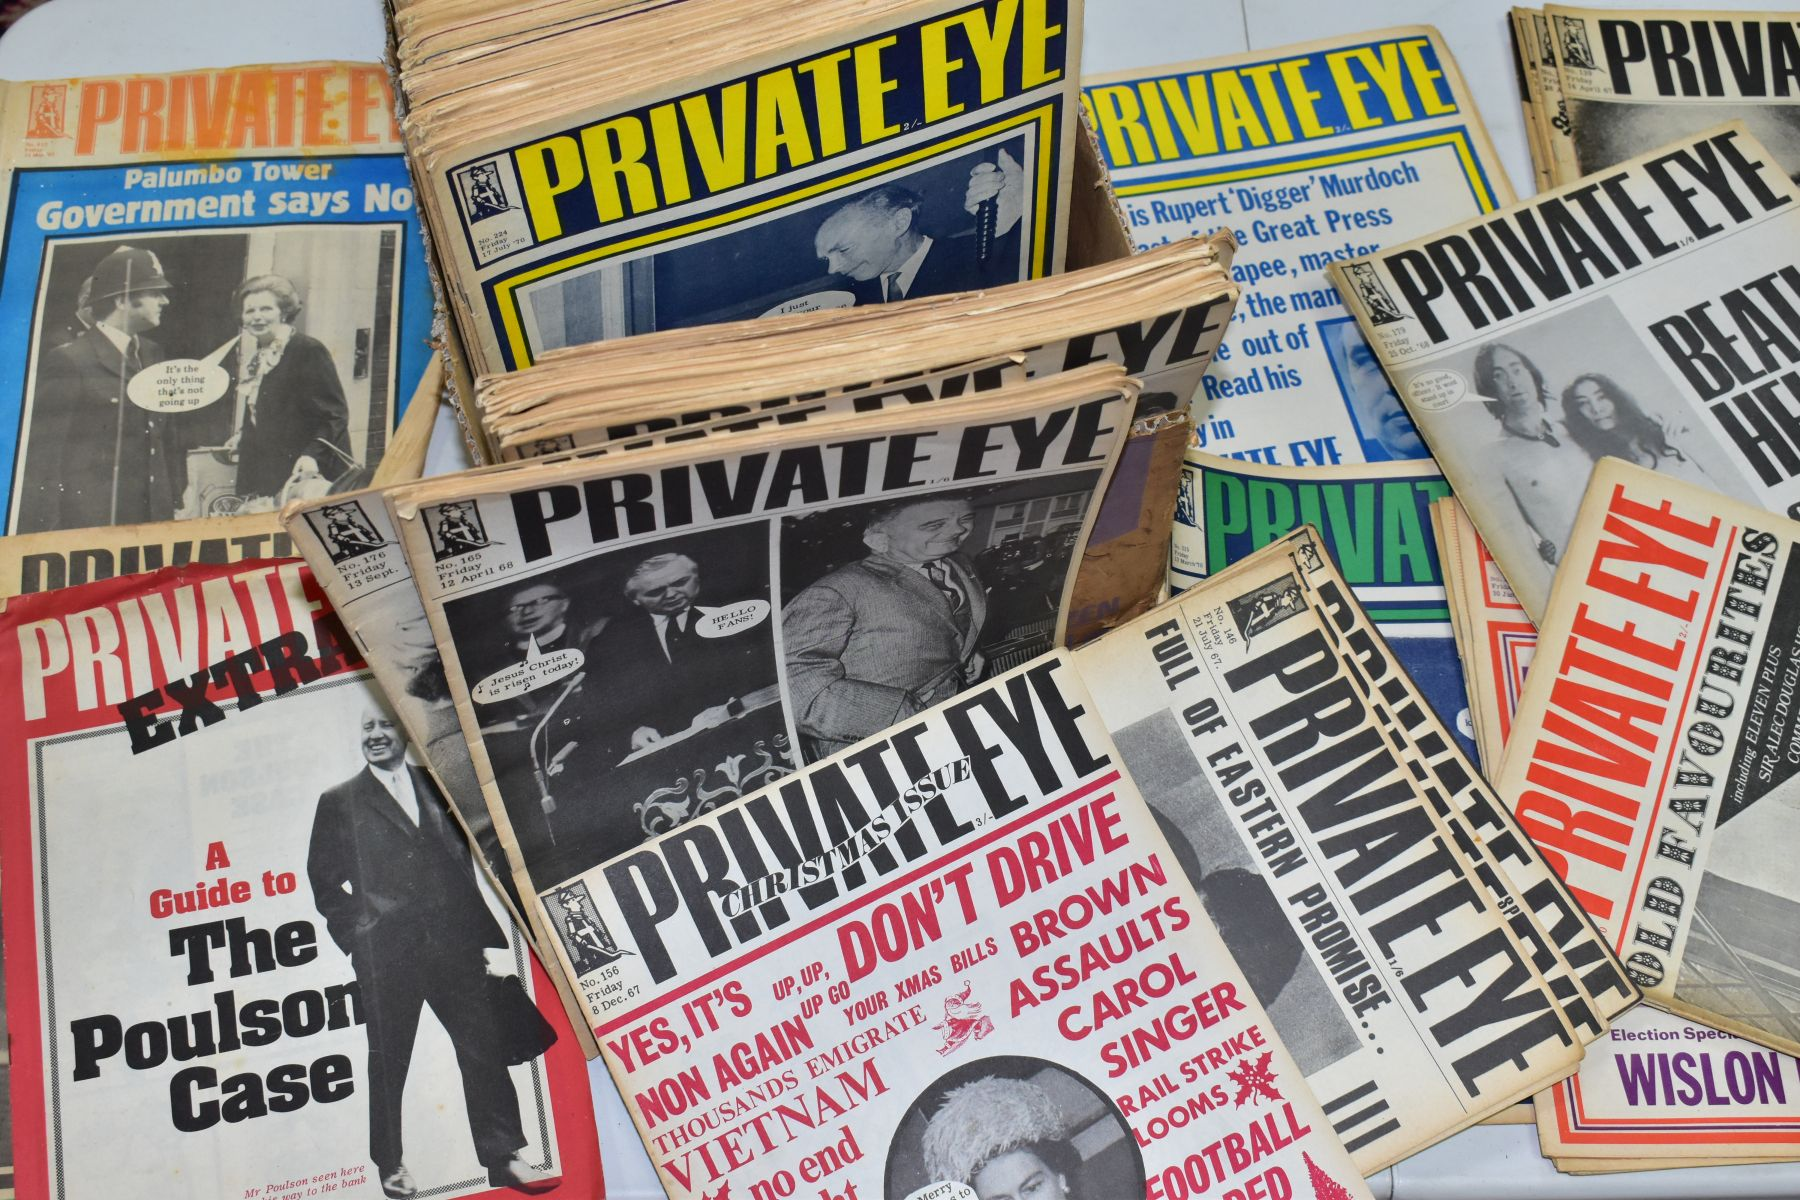 PRIVATE EYE MAGAZINE, a collection of 188 copies of Private Eye, 184 editions from 1966-1974,